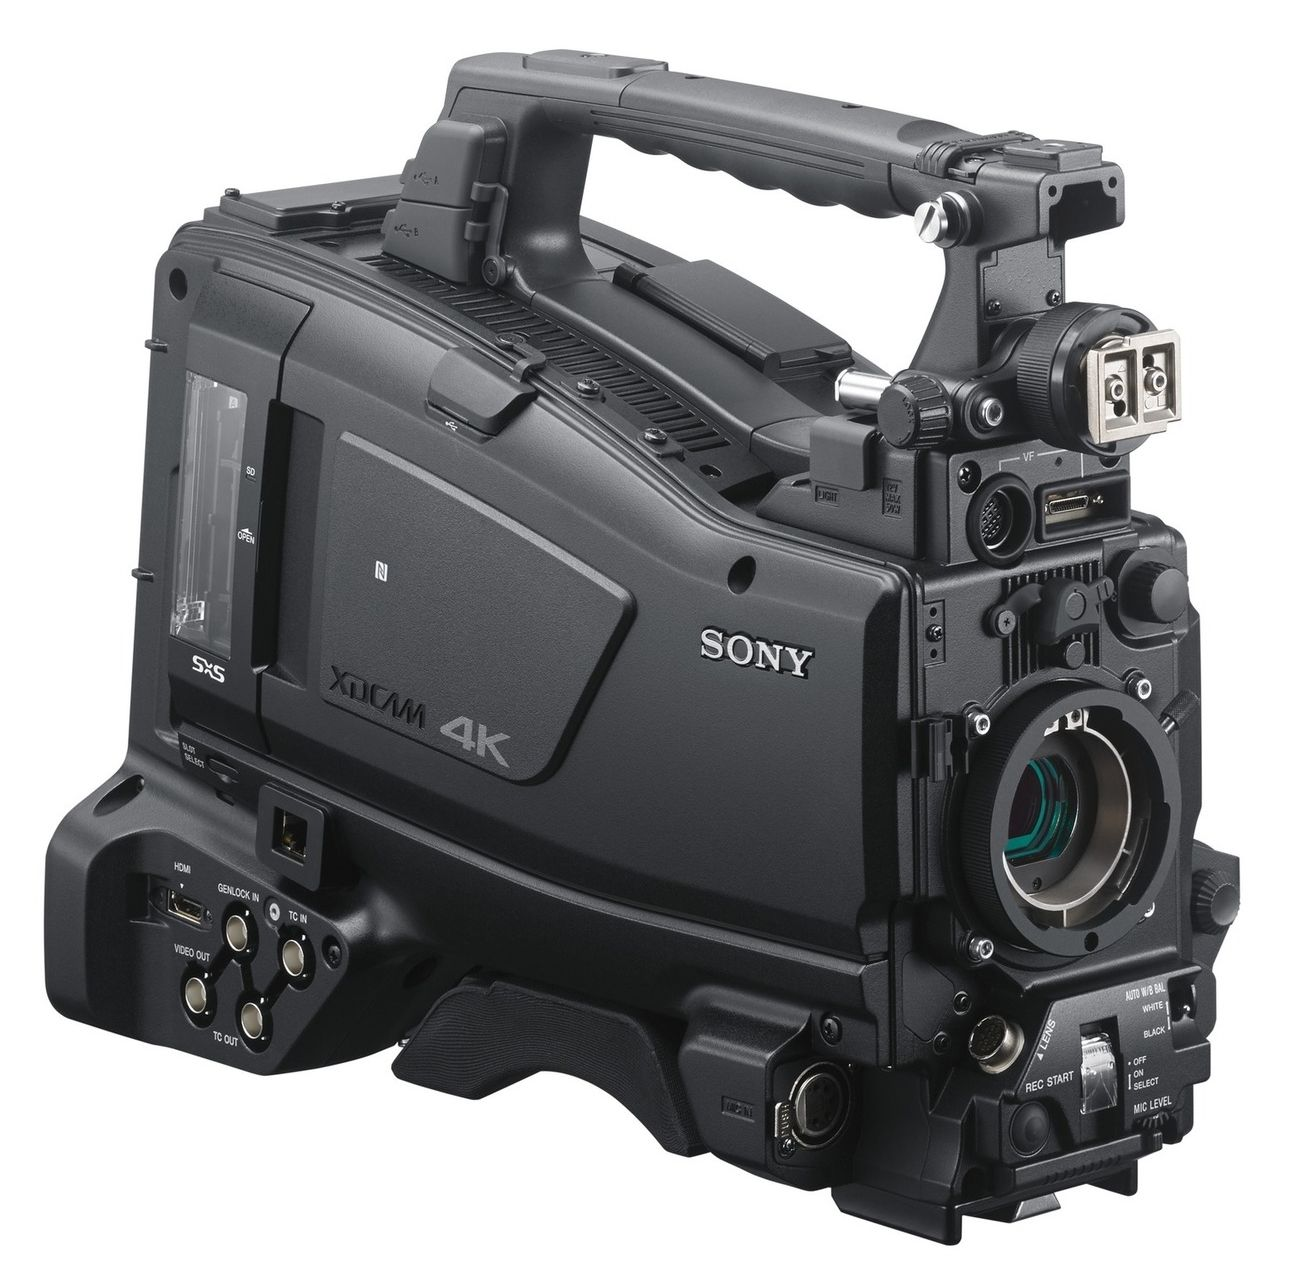 Sony At Nab 2016 Sony Mechanical Design Hard Surface Modeling